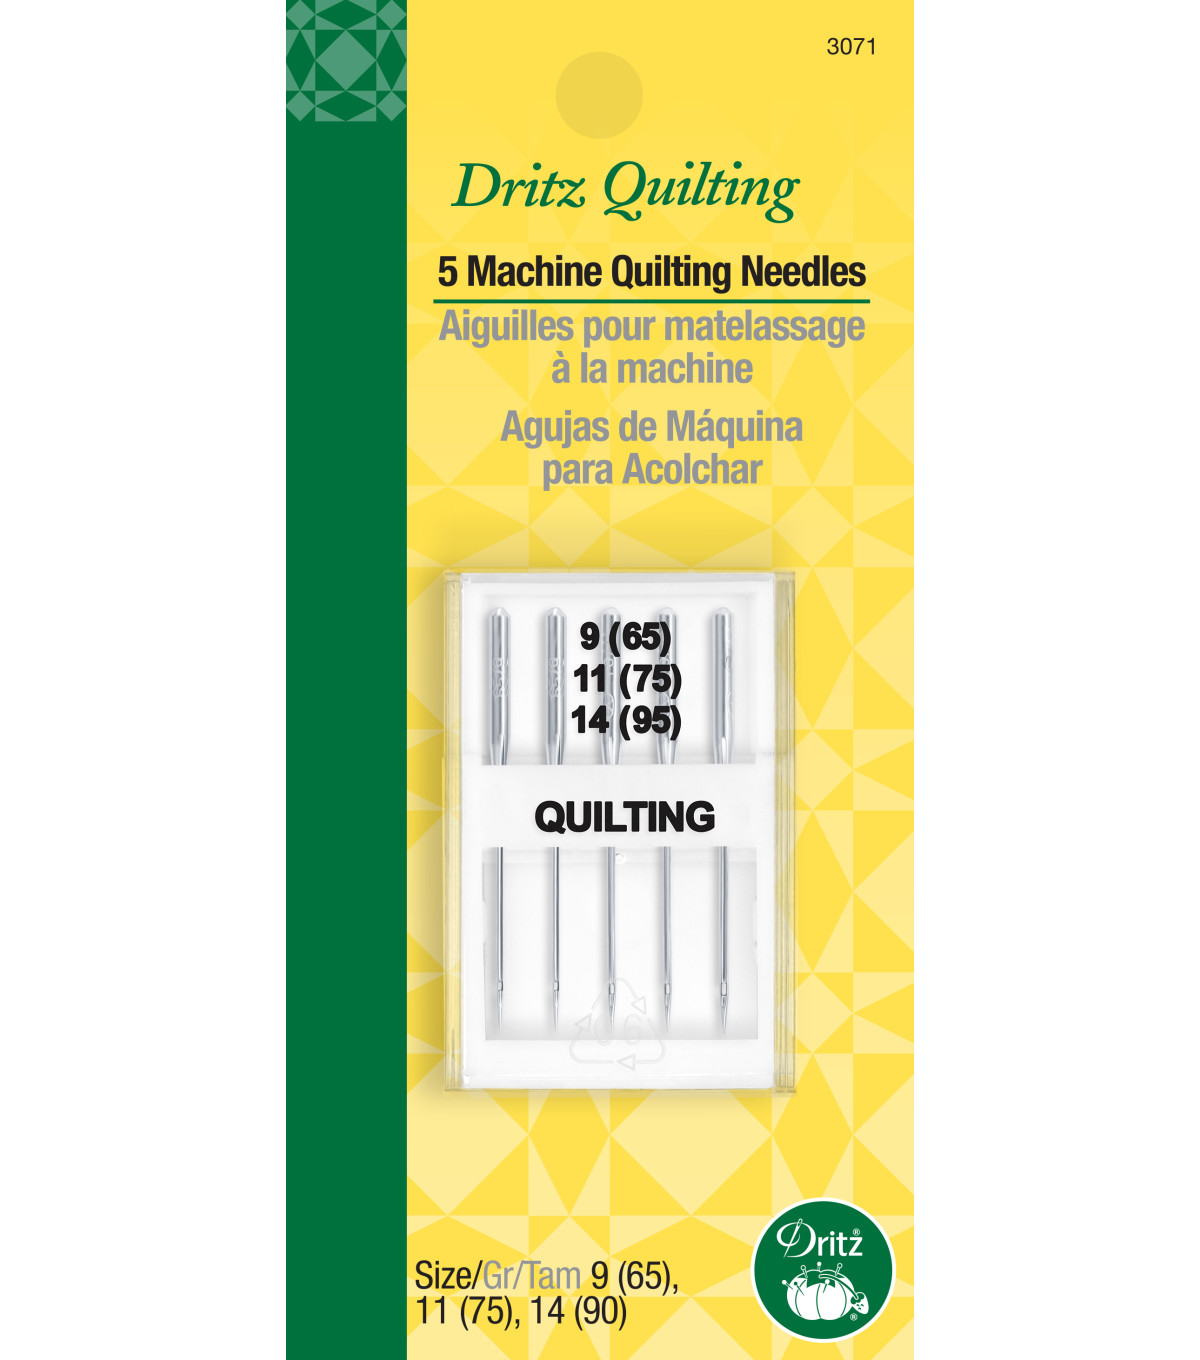 Dritz Quilting Machine Quilting Needles Sizes 9,11 & 14